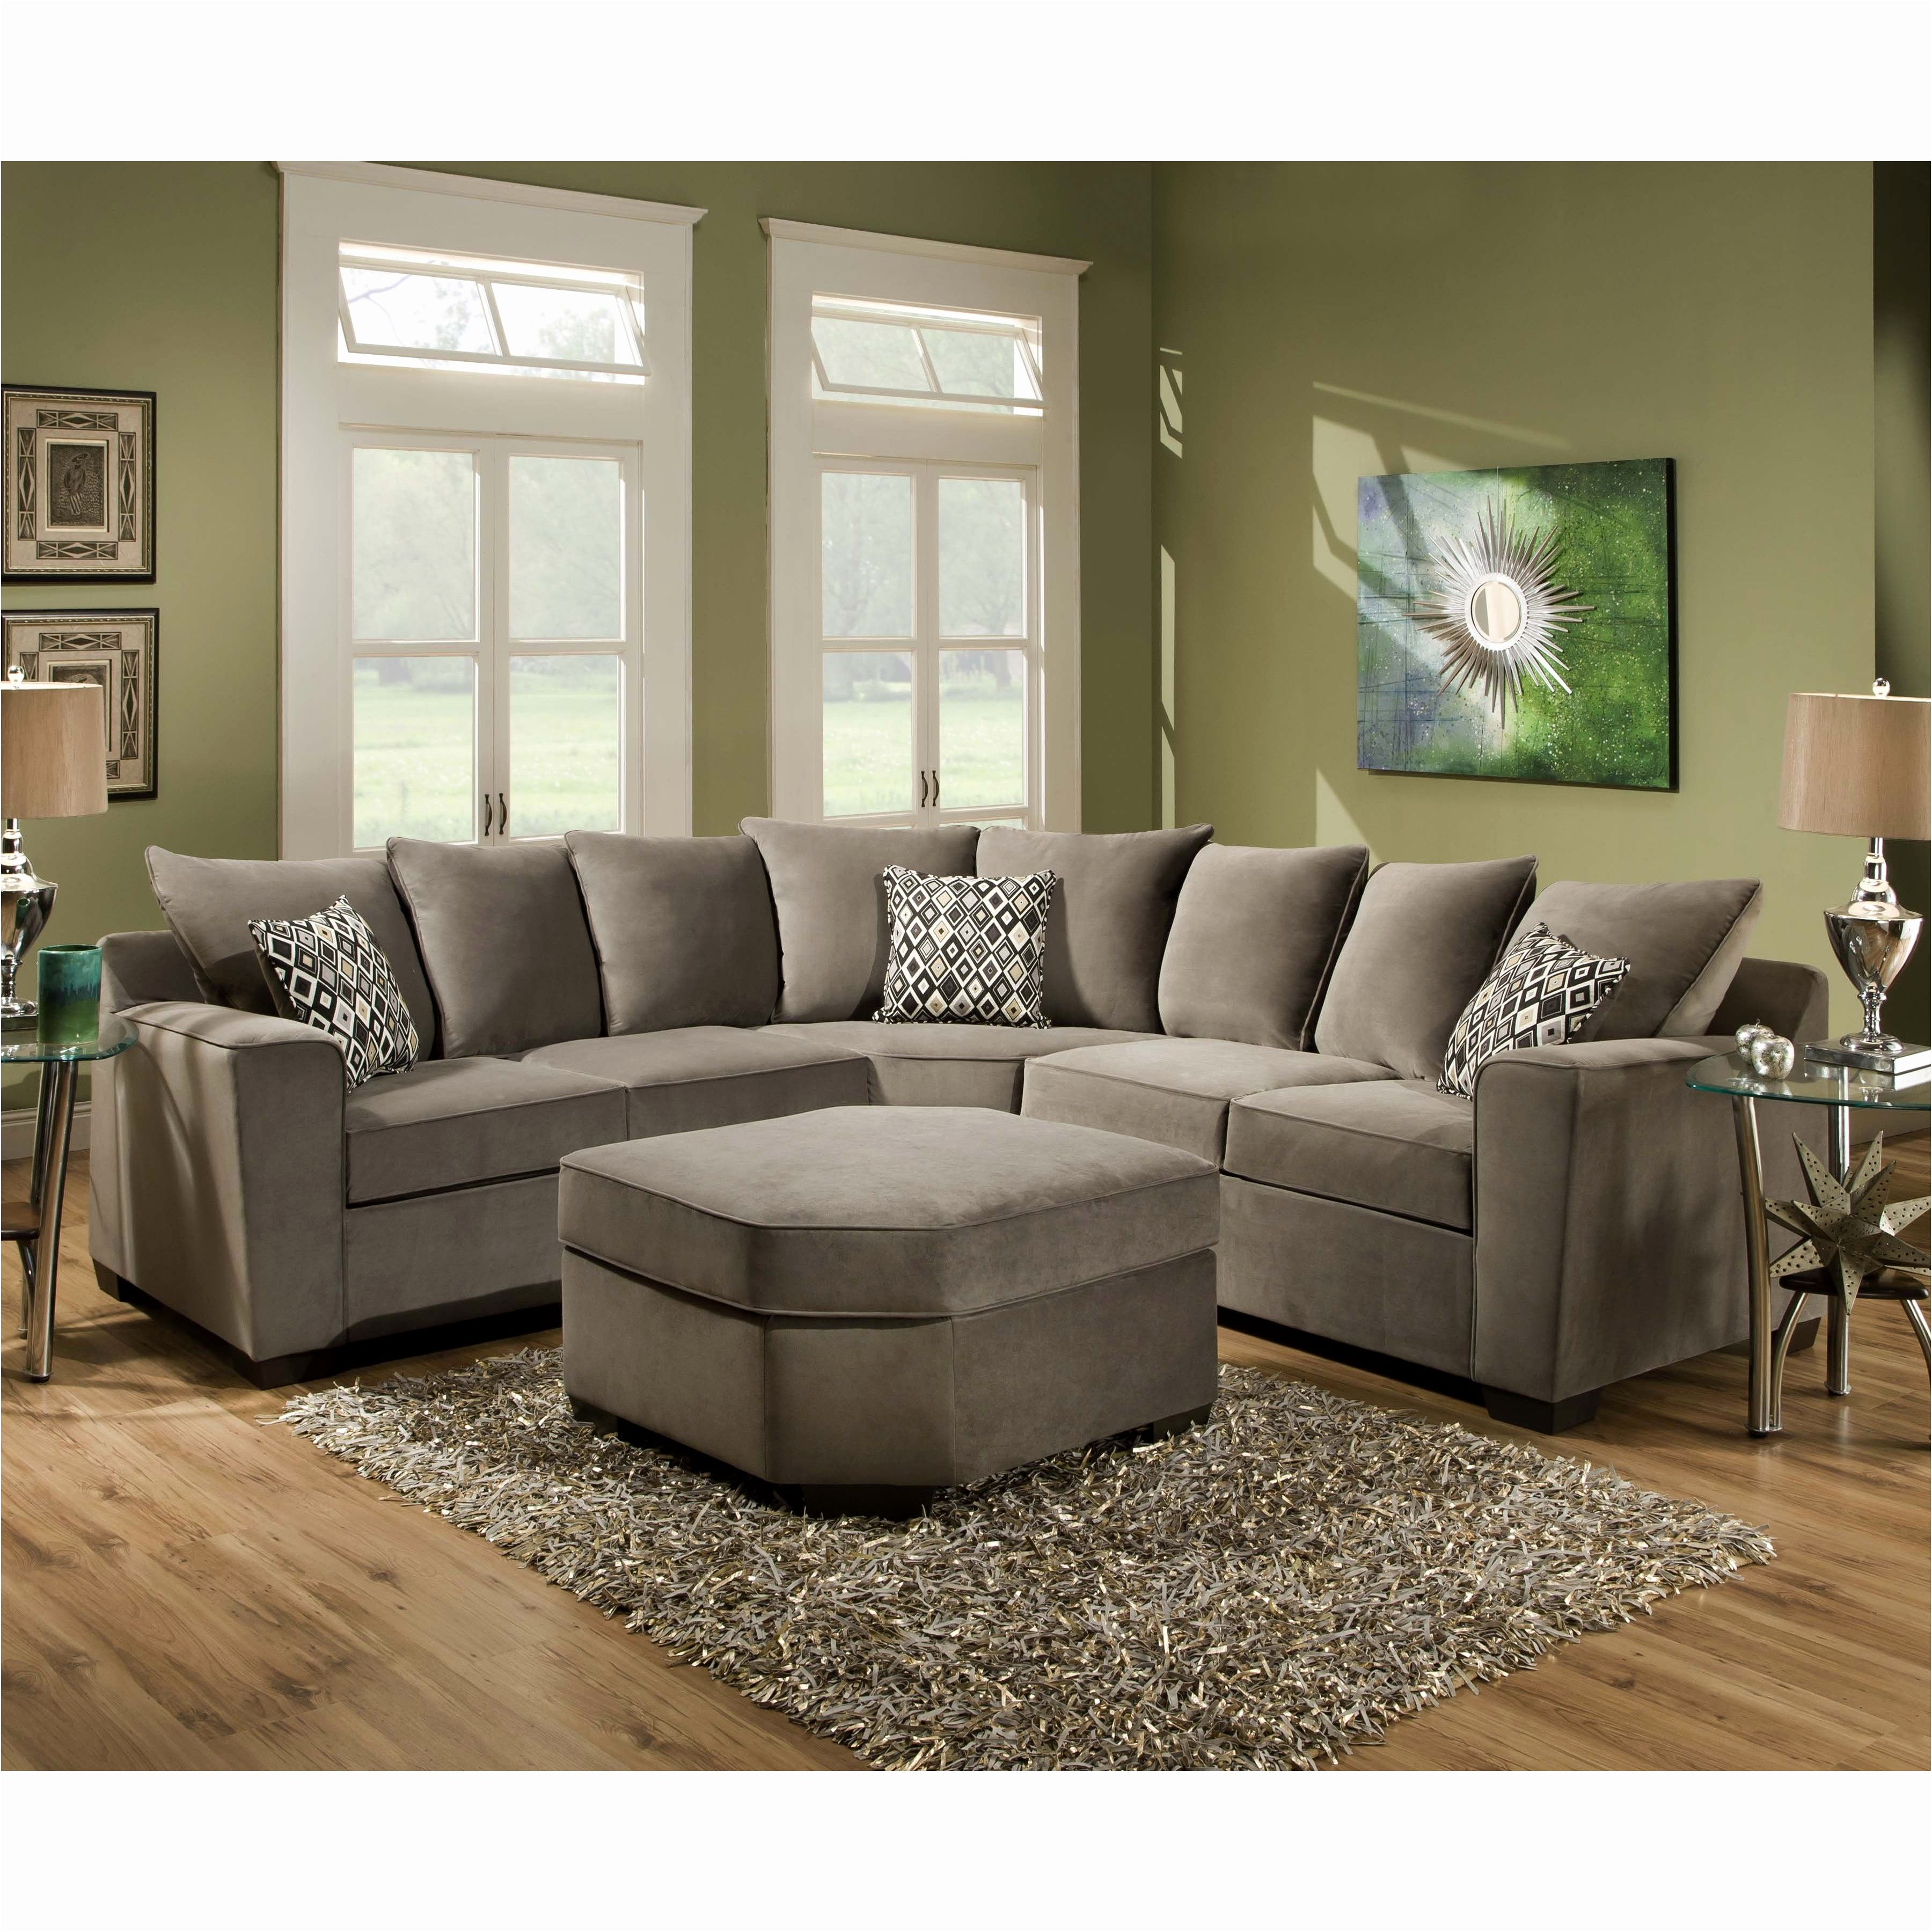 Rooms To Go Sofa Sleeper  Small scale sectional sofa, Sectional